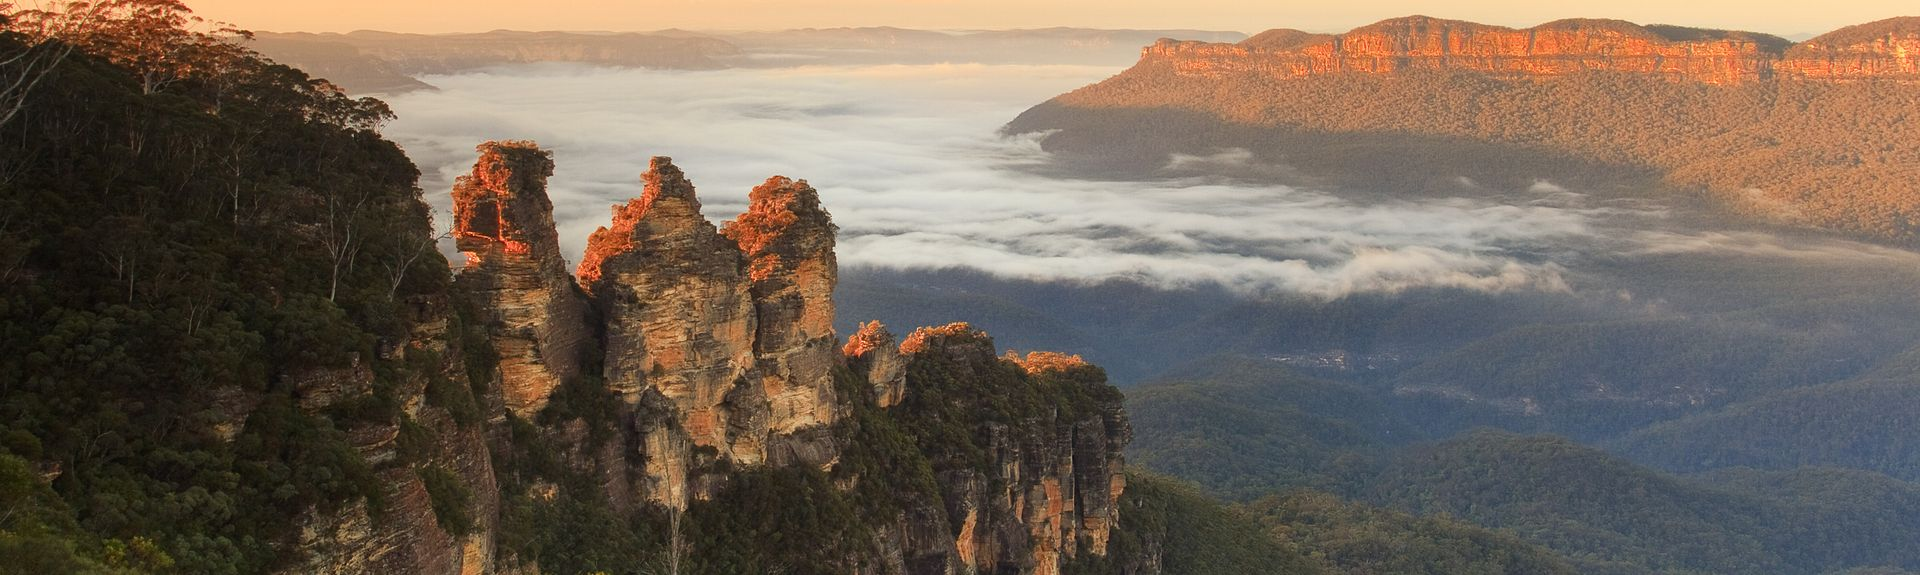 Katoomba, Sydney, New South Wales, Australia